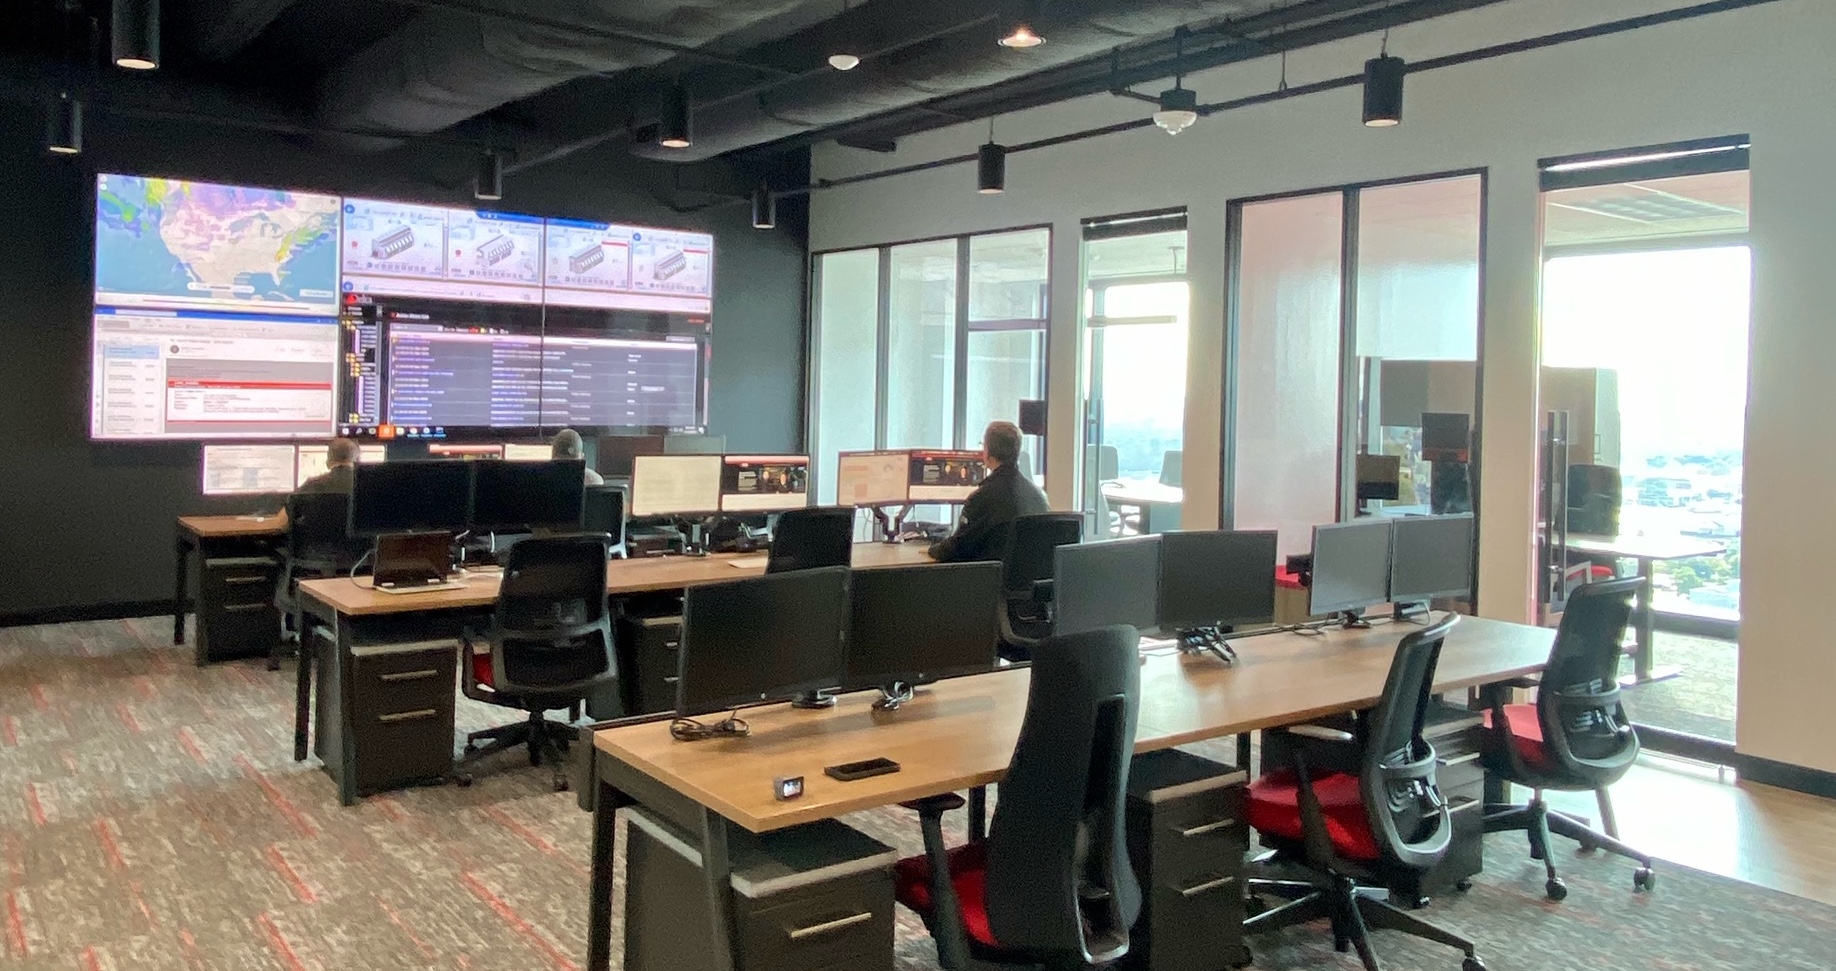 BCS Occupies New Corporate HQ and Tactical Operations Center in Addison, Texas